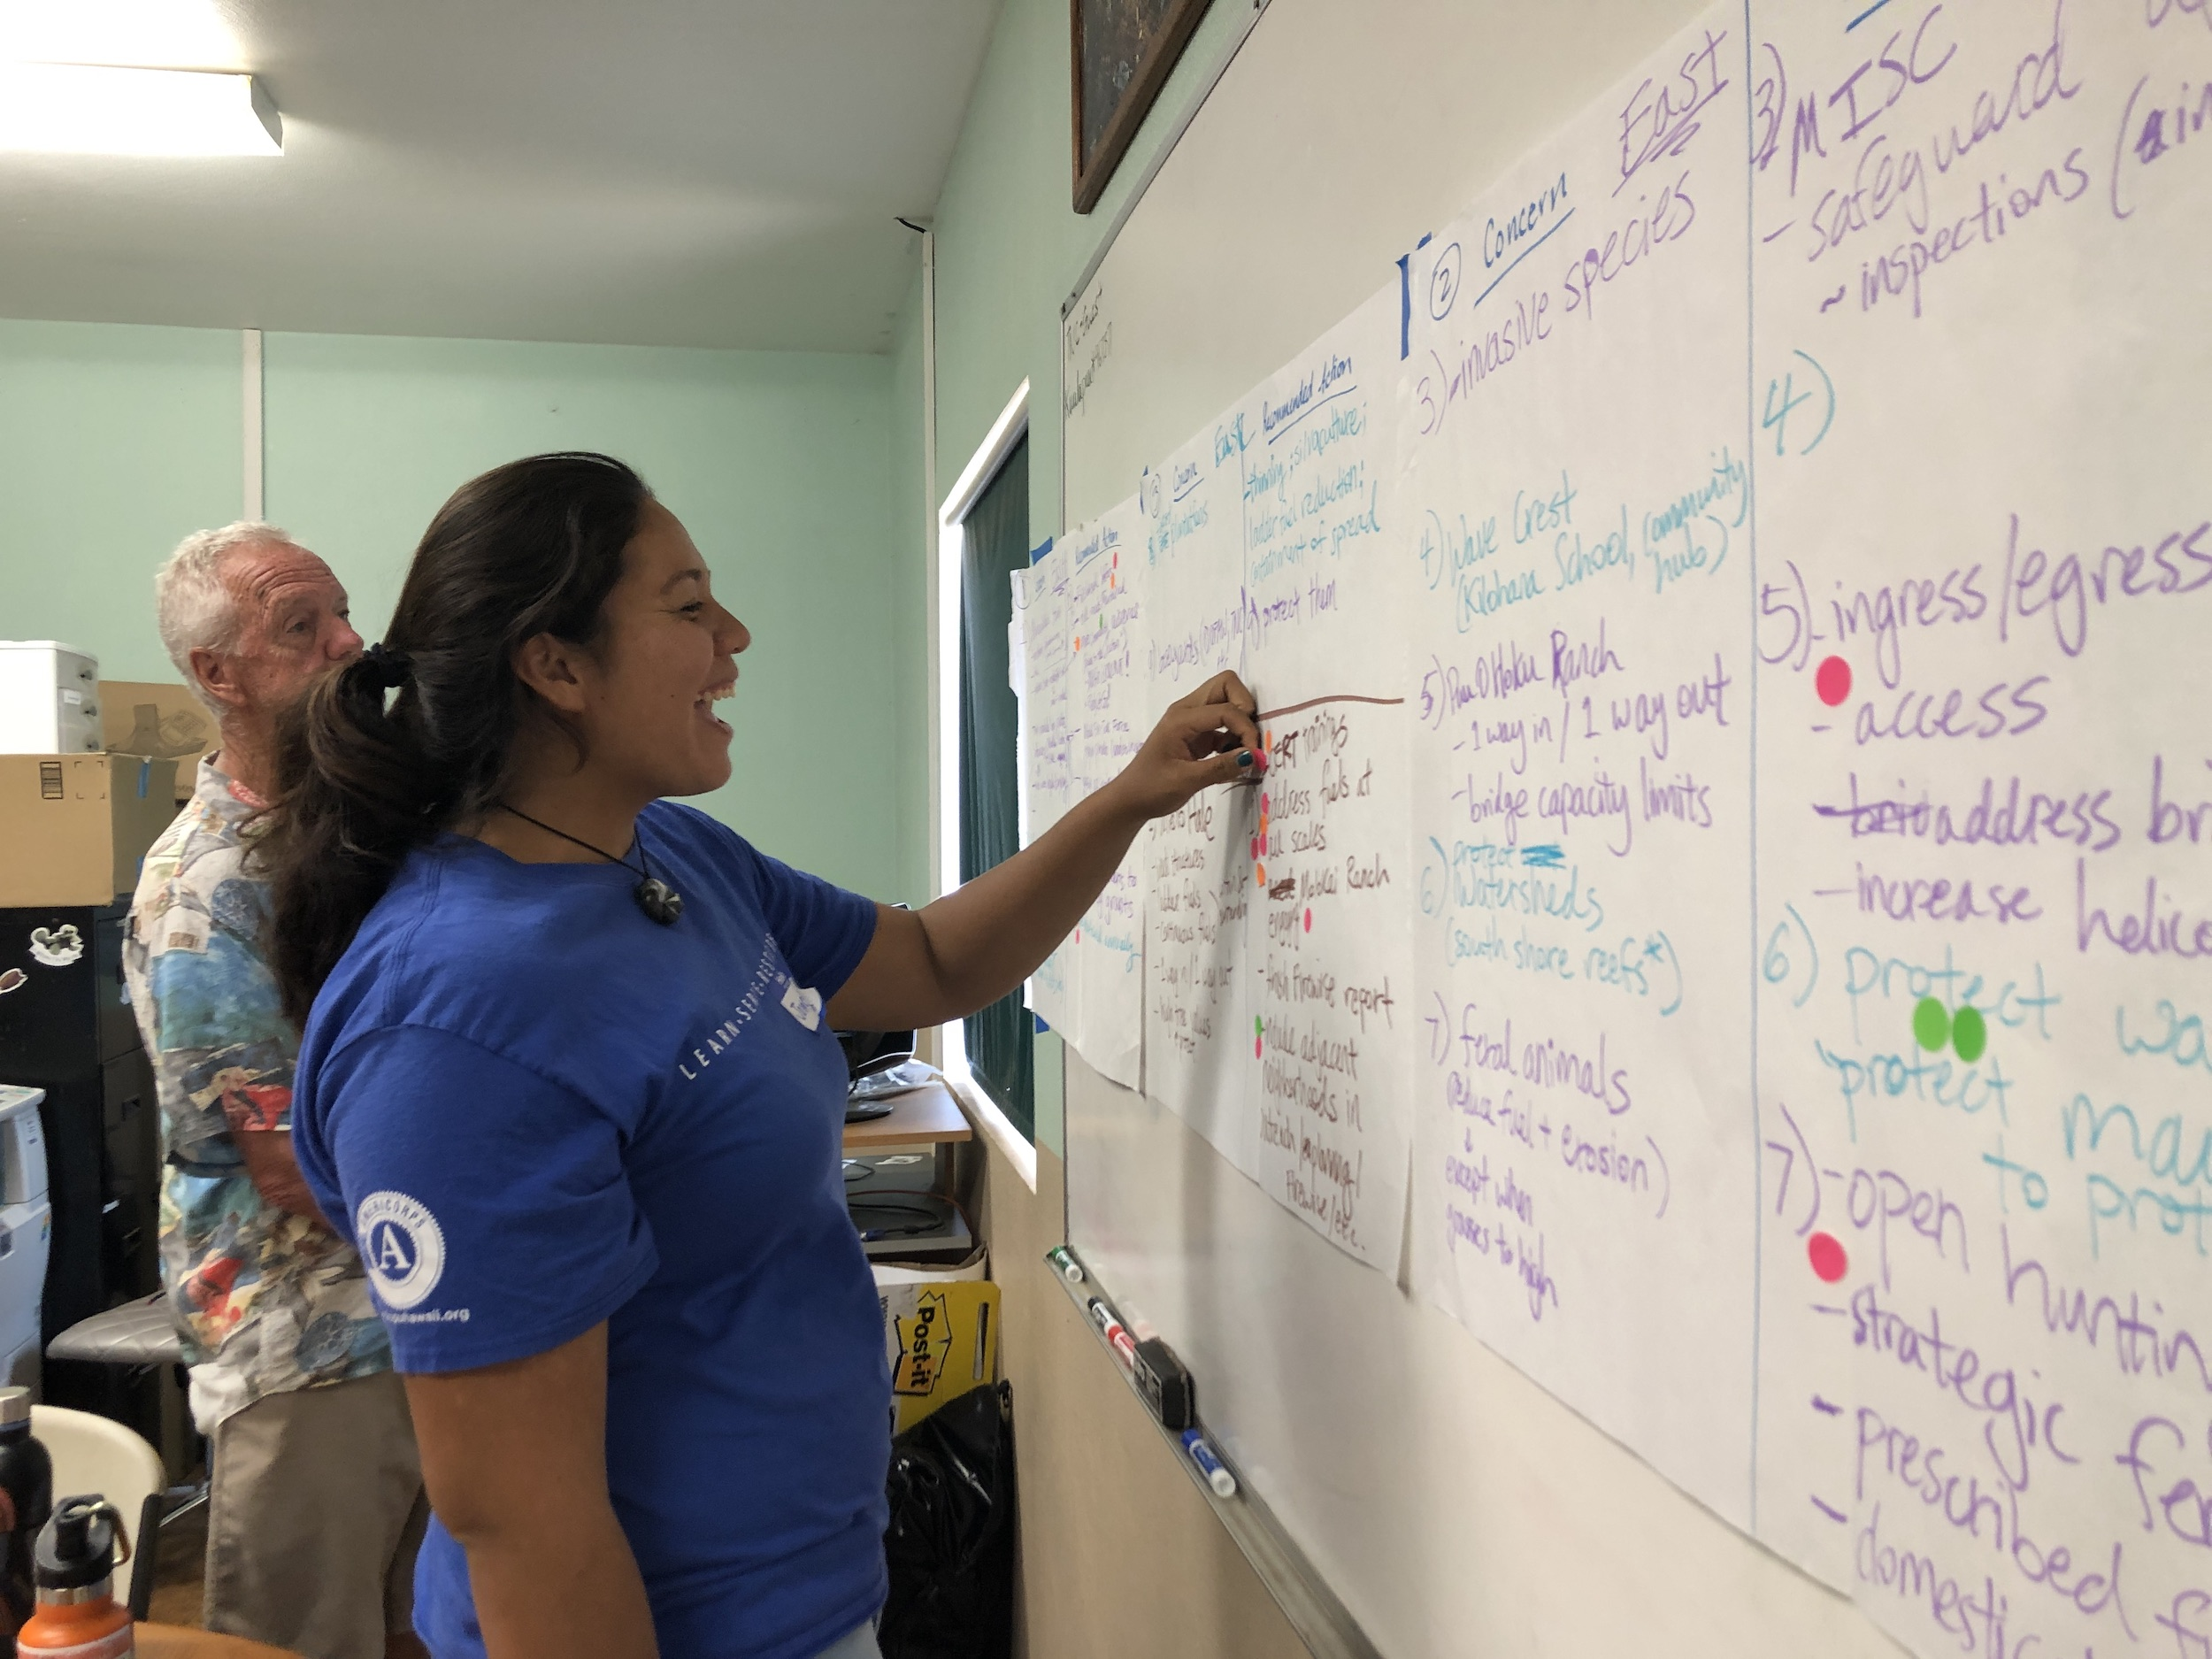 Molokai Vegetative Fuels Management Collaborative Action Planning and Mapping Workshop_4_2_2019_30.JPG